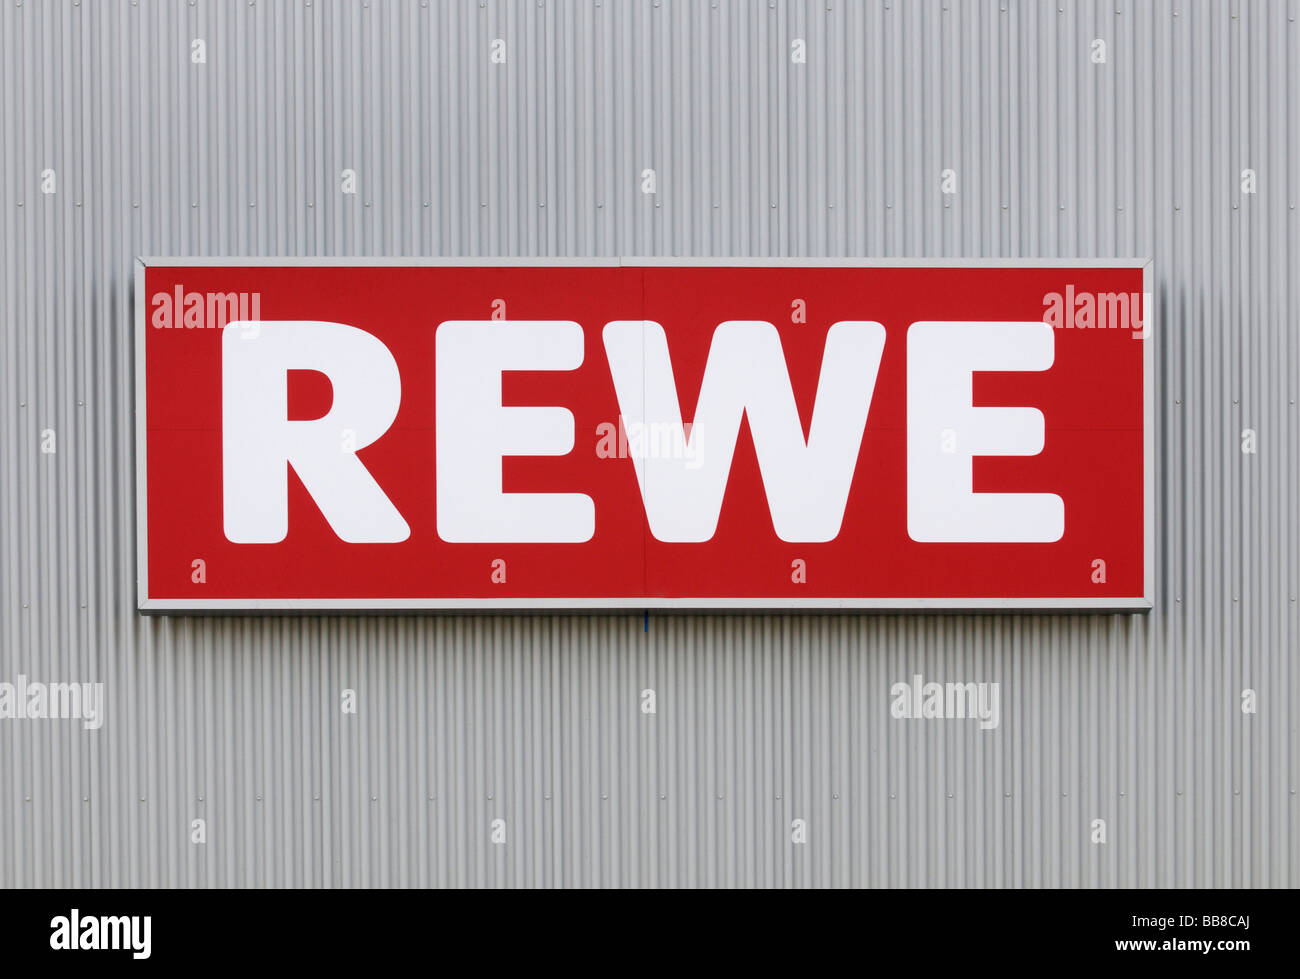 Rewe sing on frontage of corrugated iron - Stock Image